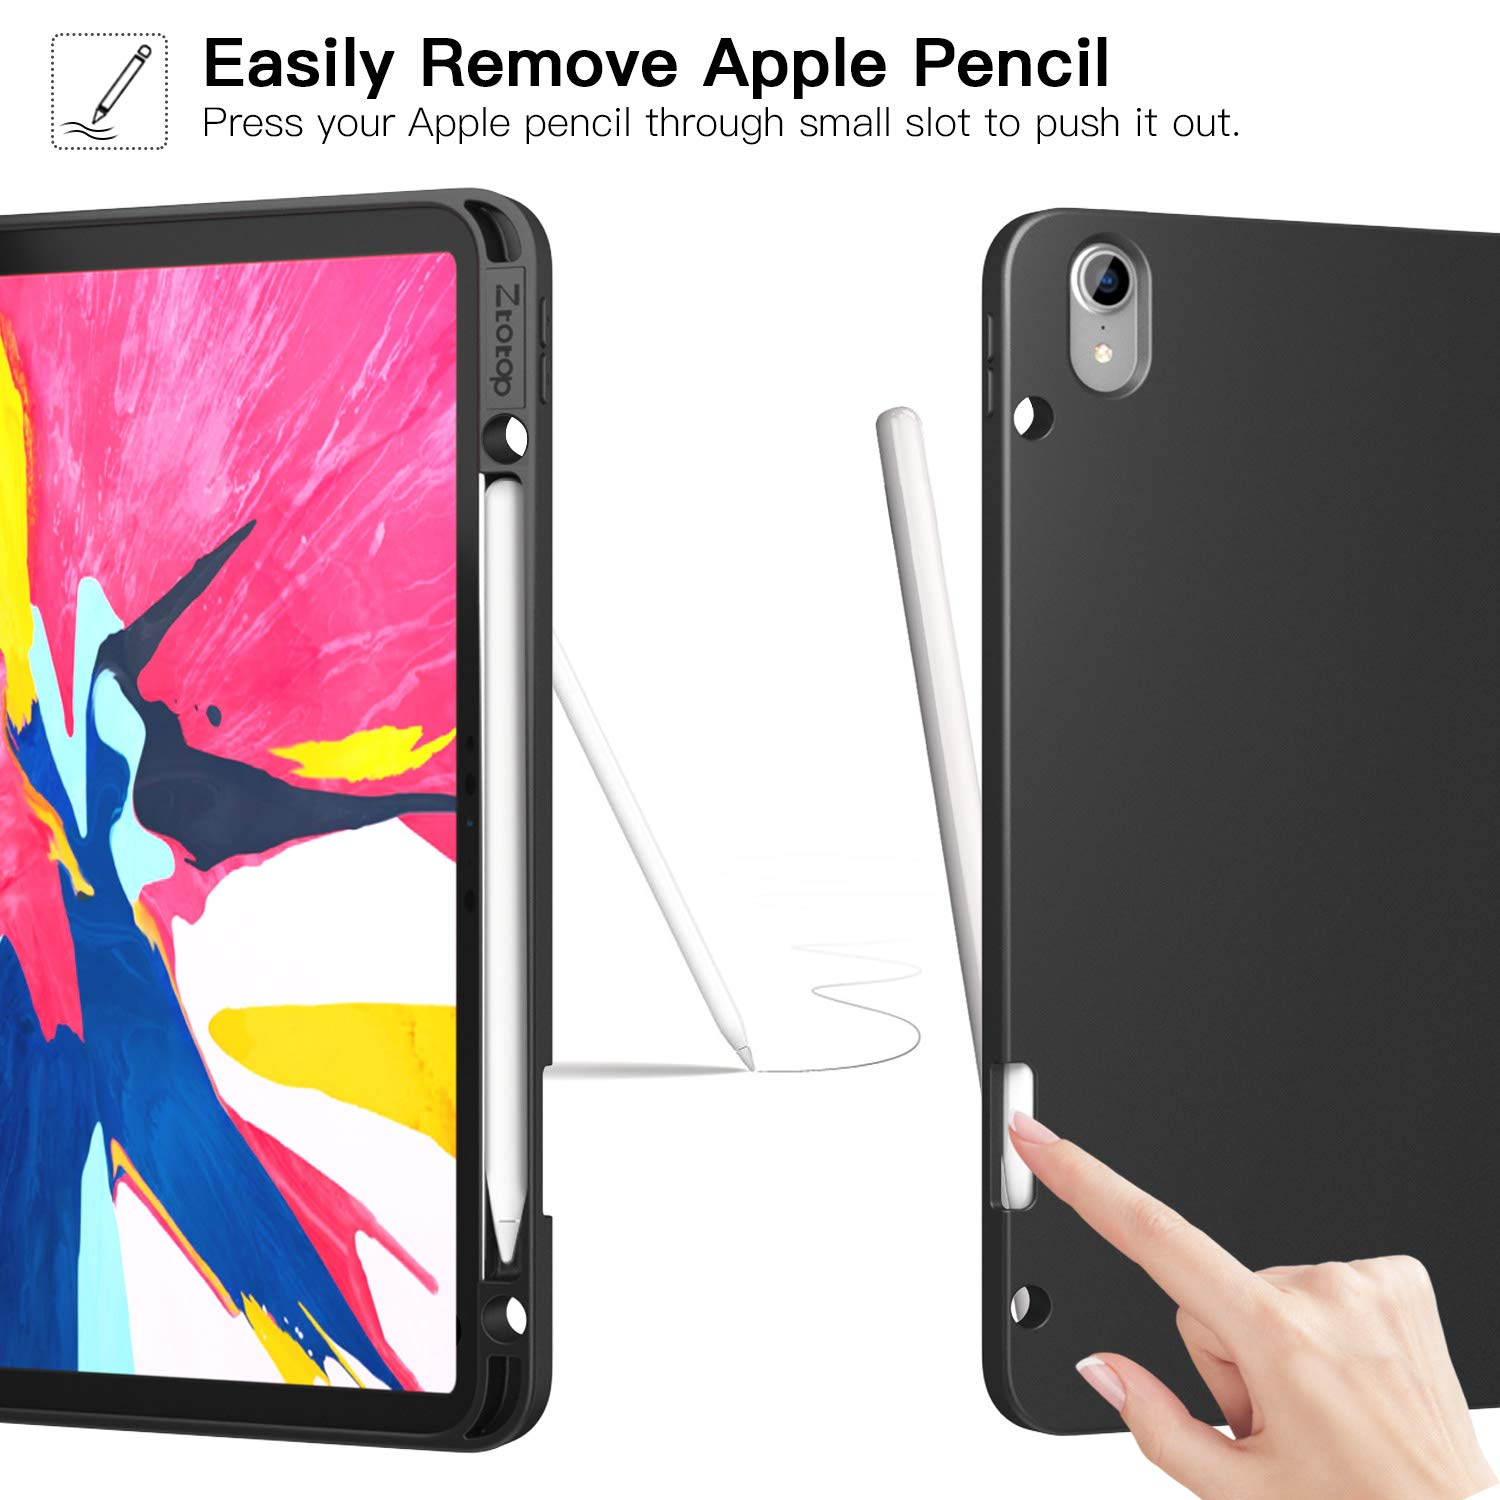 Ztotop Case for iPad Pro 12.9 Inch 2018, Full Body Protective Rugged Shockproof Case with iPad Pencil Holder, Auto Sleep/Wake, Support iPad Pencil Charging for iPad Pro 12.9 Inch 3rd Gen - Black by Ztotop (Image #5)